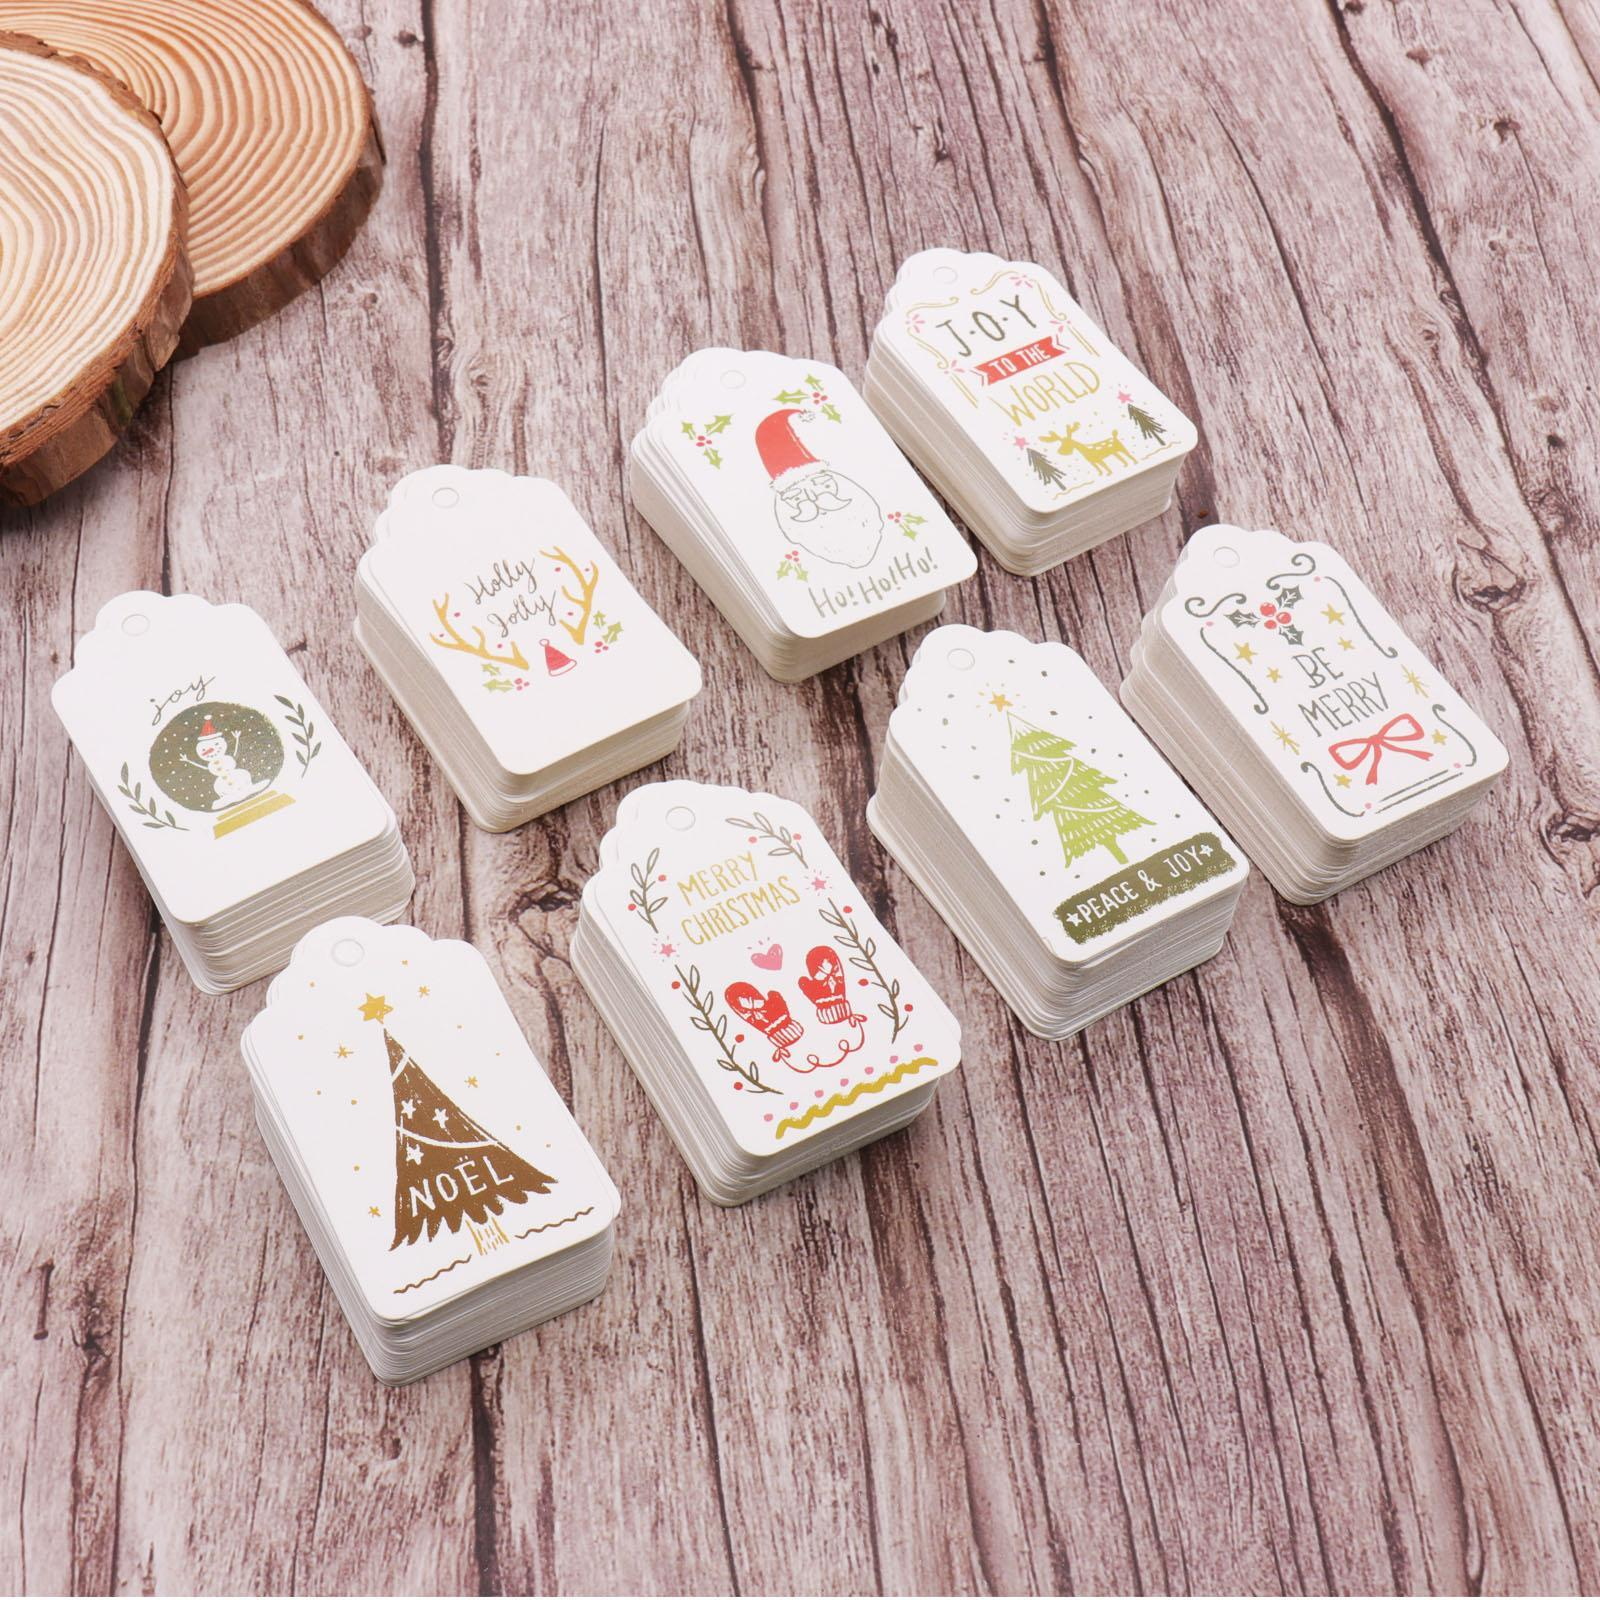 50pcs/lot Merry Christmas DIY Unique Gift Tags JOY TO WORLD Tag Small Card Optional String DIY Craft Label Party Decor